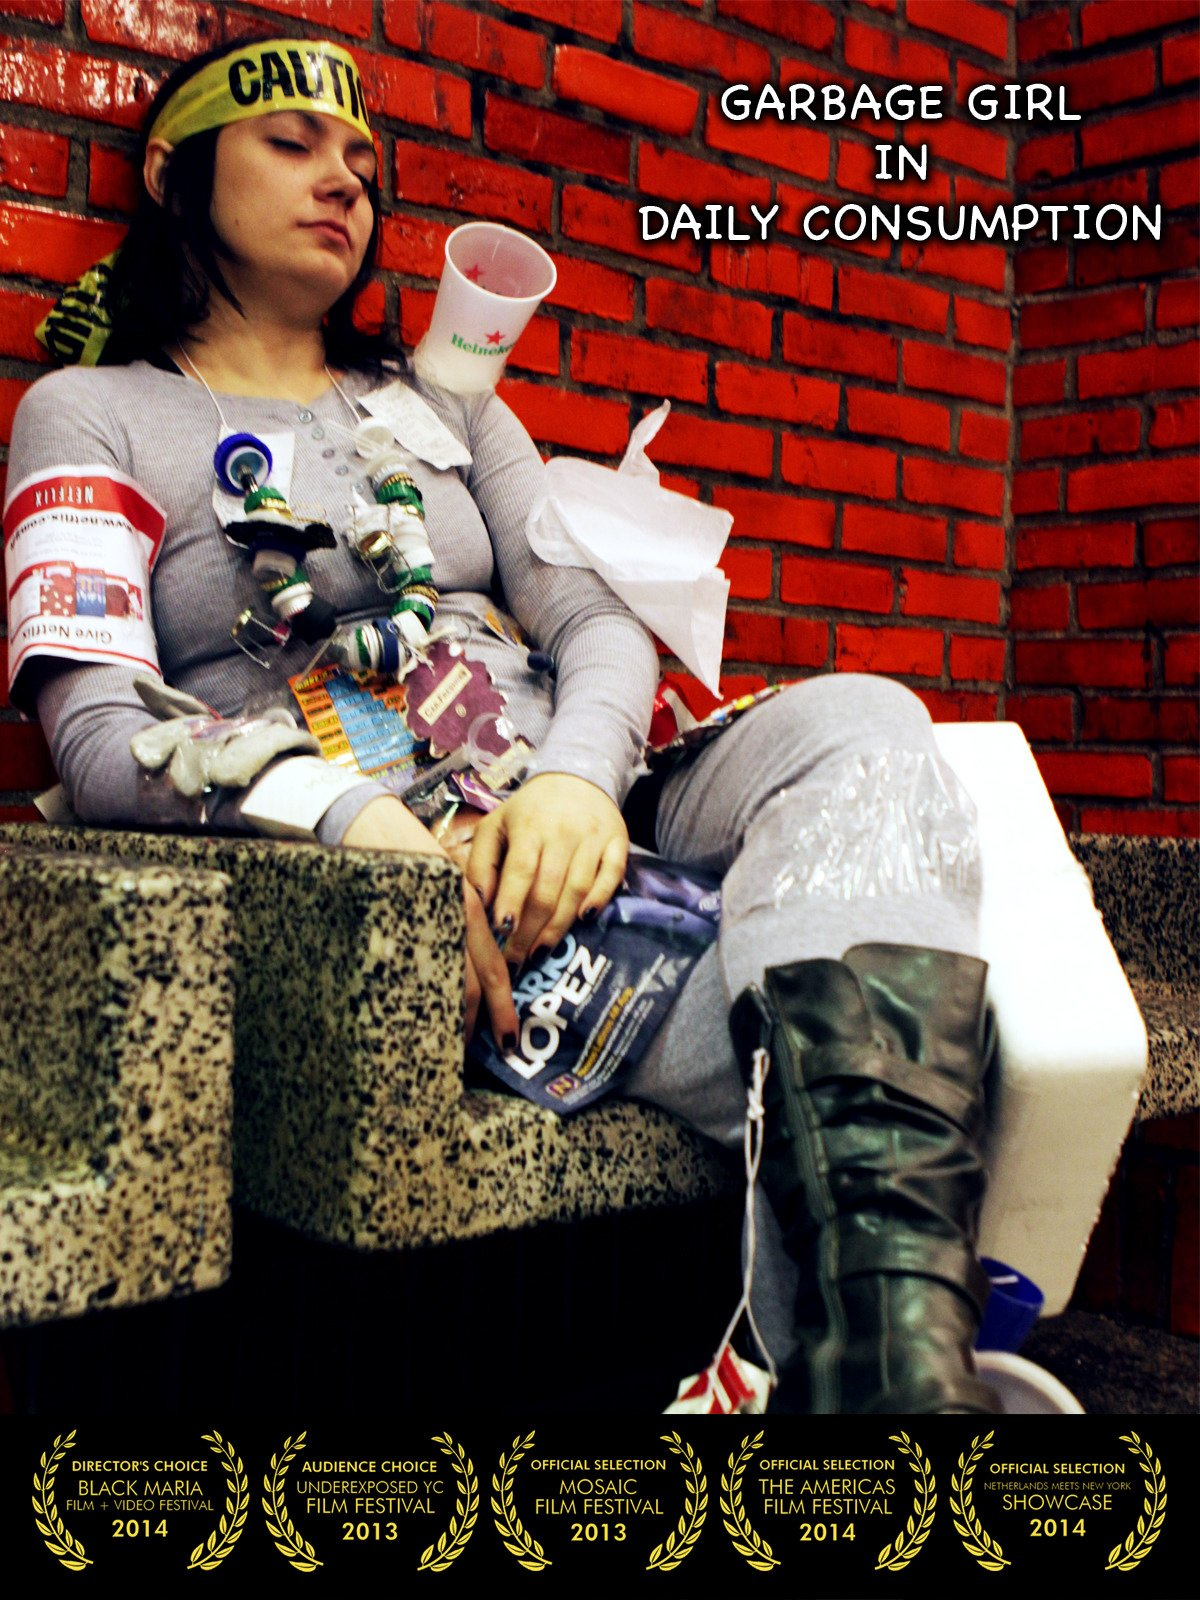 Garbage Girl in Daily Consumption